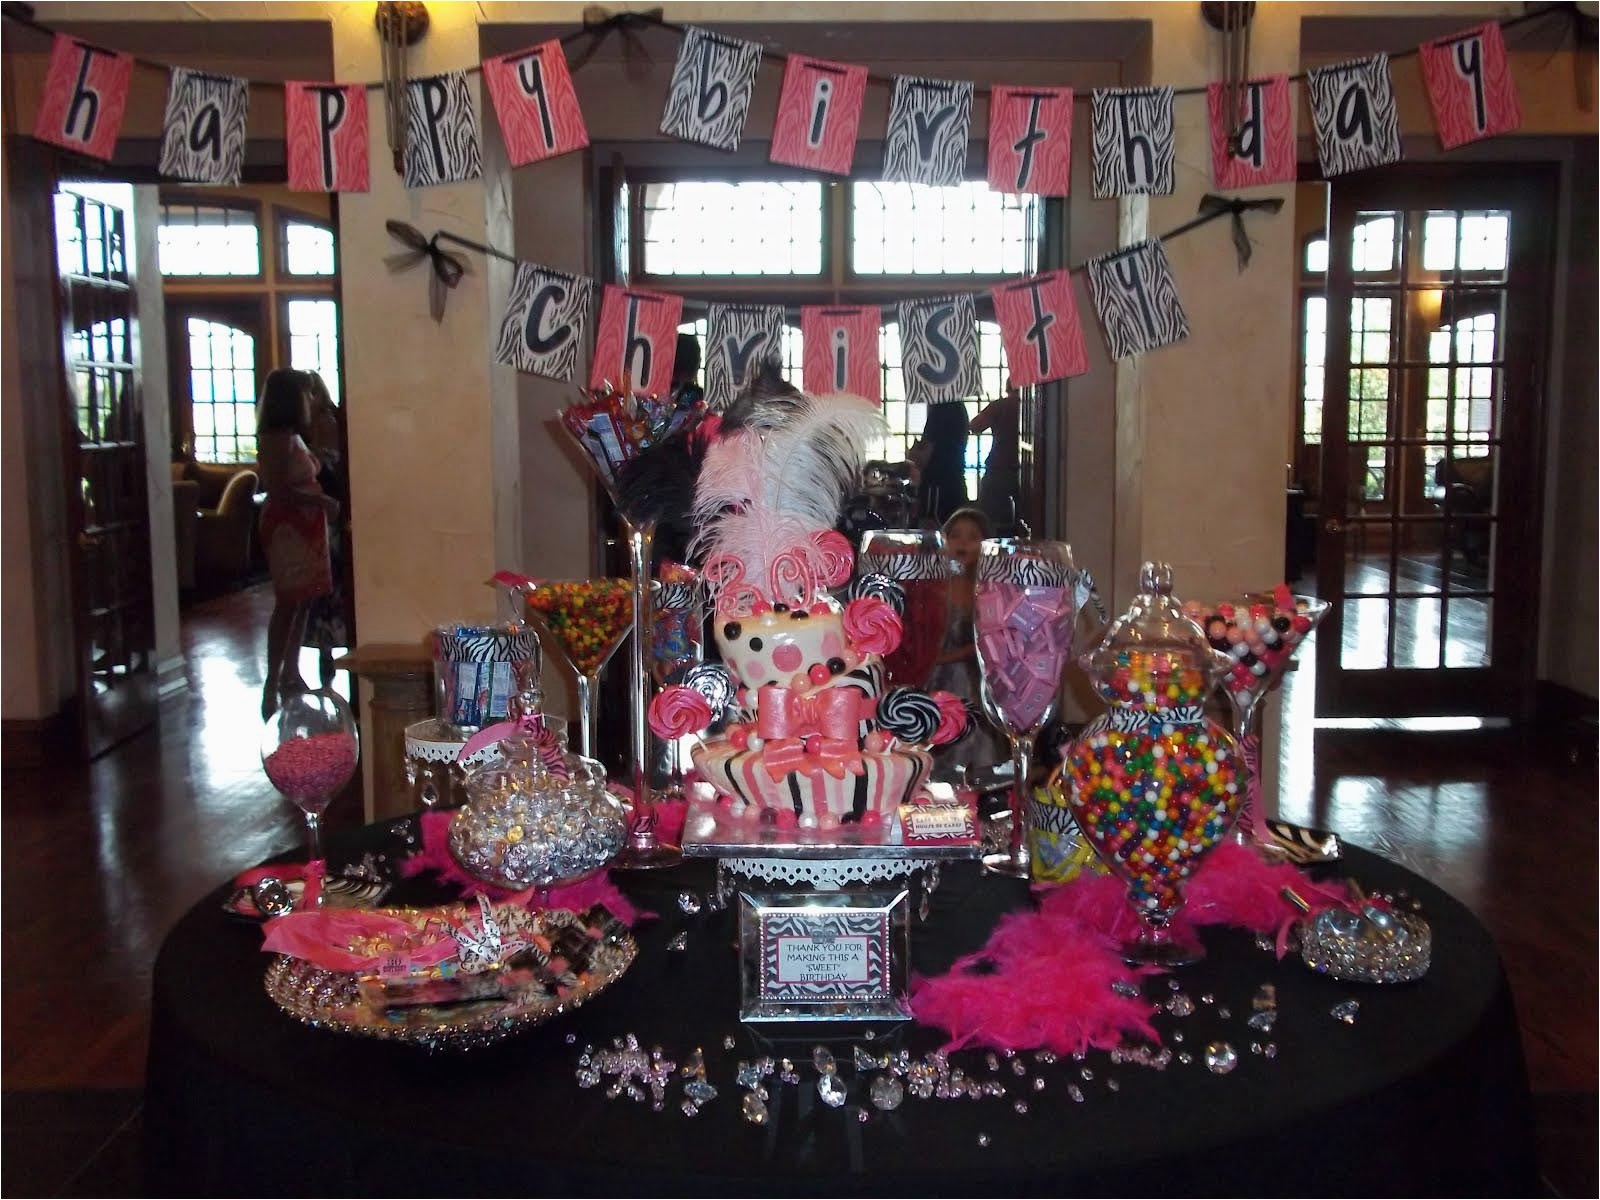 Decorating Ideas for 30th Birthday Party Surprise 30th Birthday Party Ideas Home Party Ideas